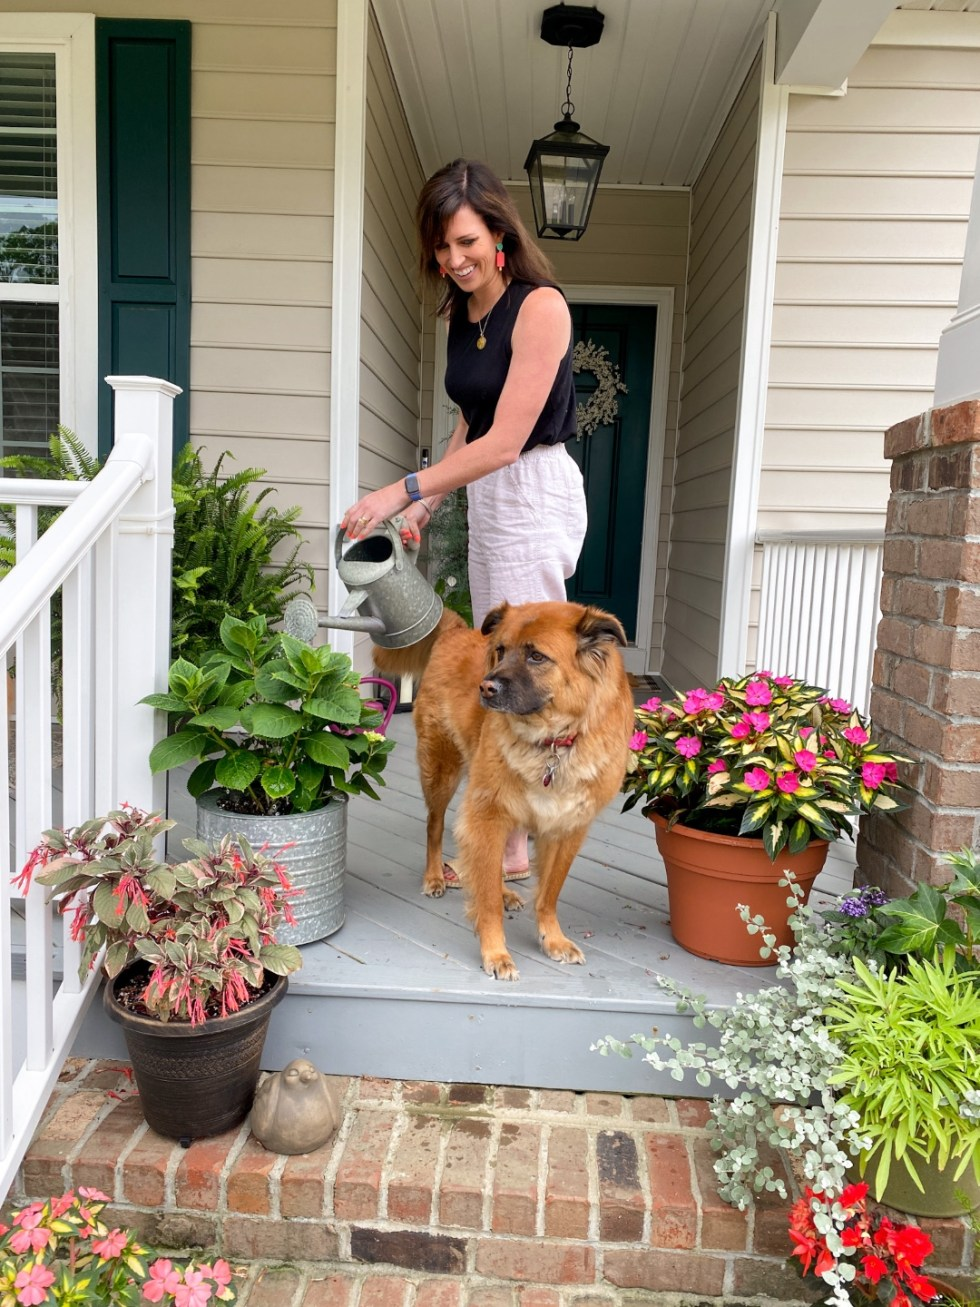 Style Diary: What I've Been Wearing this Spring - I'm Fixin' To - @imfixintoblog | Spring Essentials by popular NC fashion blog, I'm Fixin' To: image of a woman standing on her front porch and watering her plants while wearing black tank top and white linen pants.